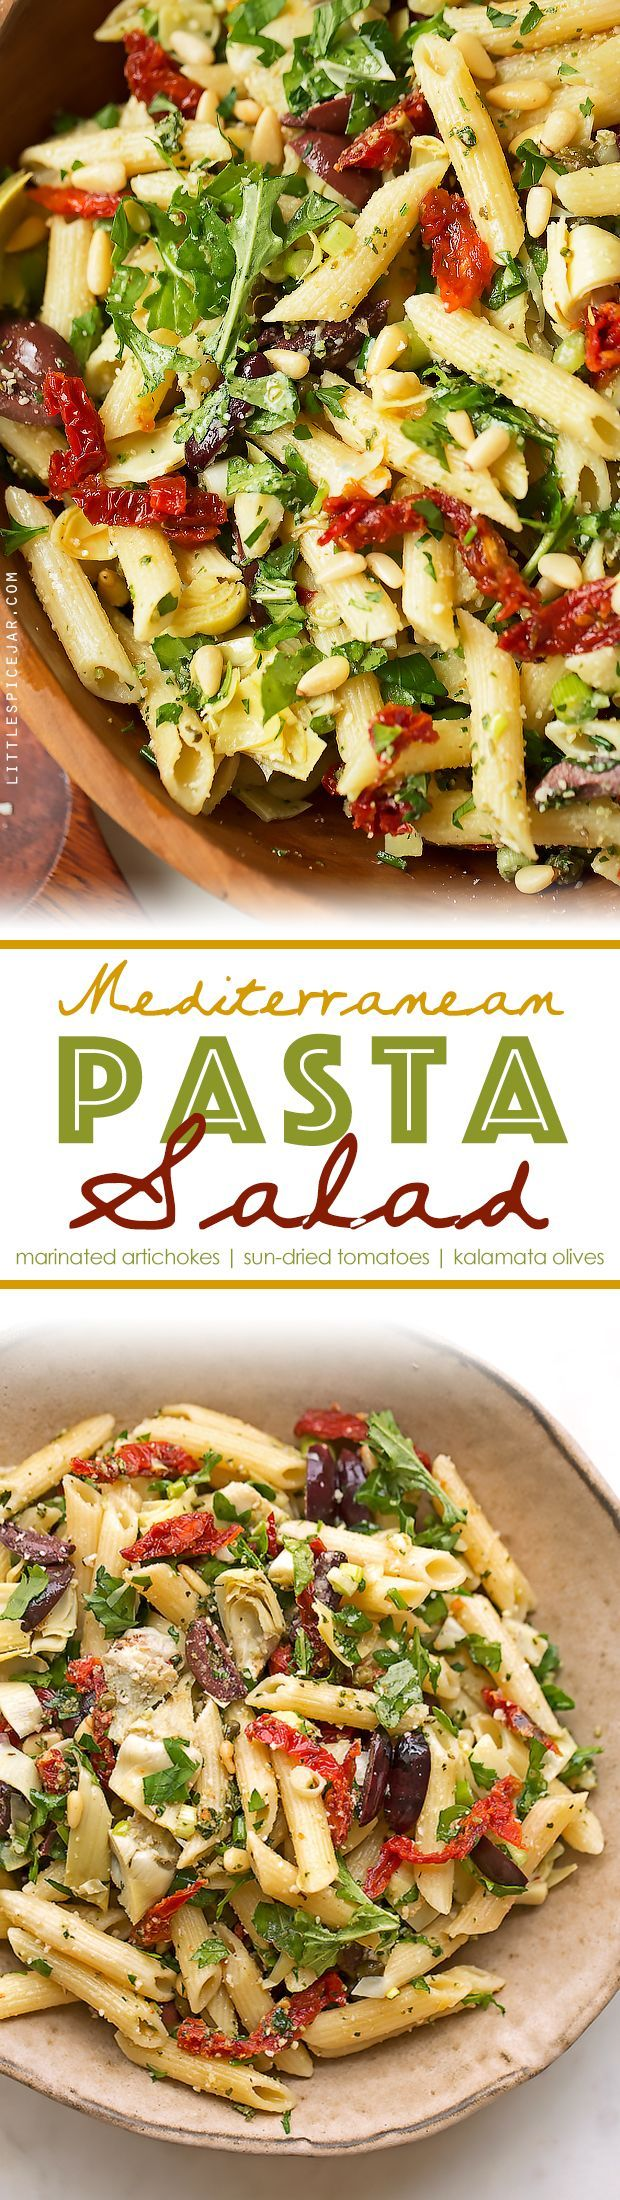 Mediterranean Pasta Salad - This Cafe Express inspired pasta salad is loaded with marinated artichoke hearts, sun-dried tomatoes, kalamata olives, and so much more! #pastasalad #italianpastasalad #mediterraneanpastasalad | Littlespicejar.com